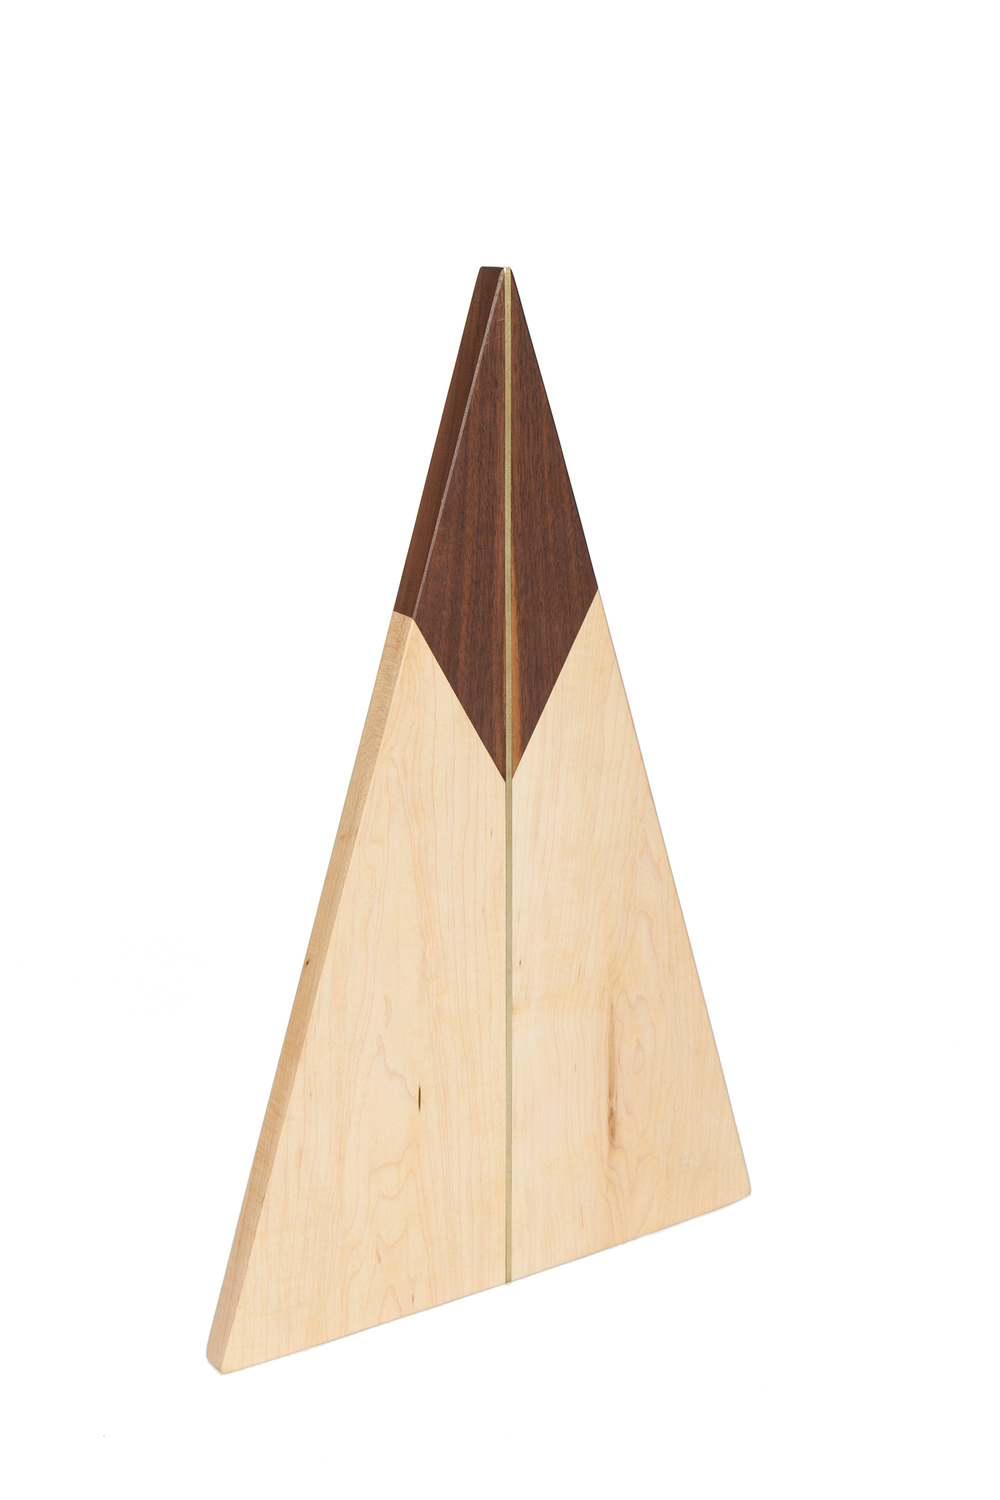 Chris earl triangle cheeseboard 1